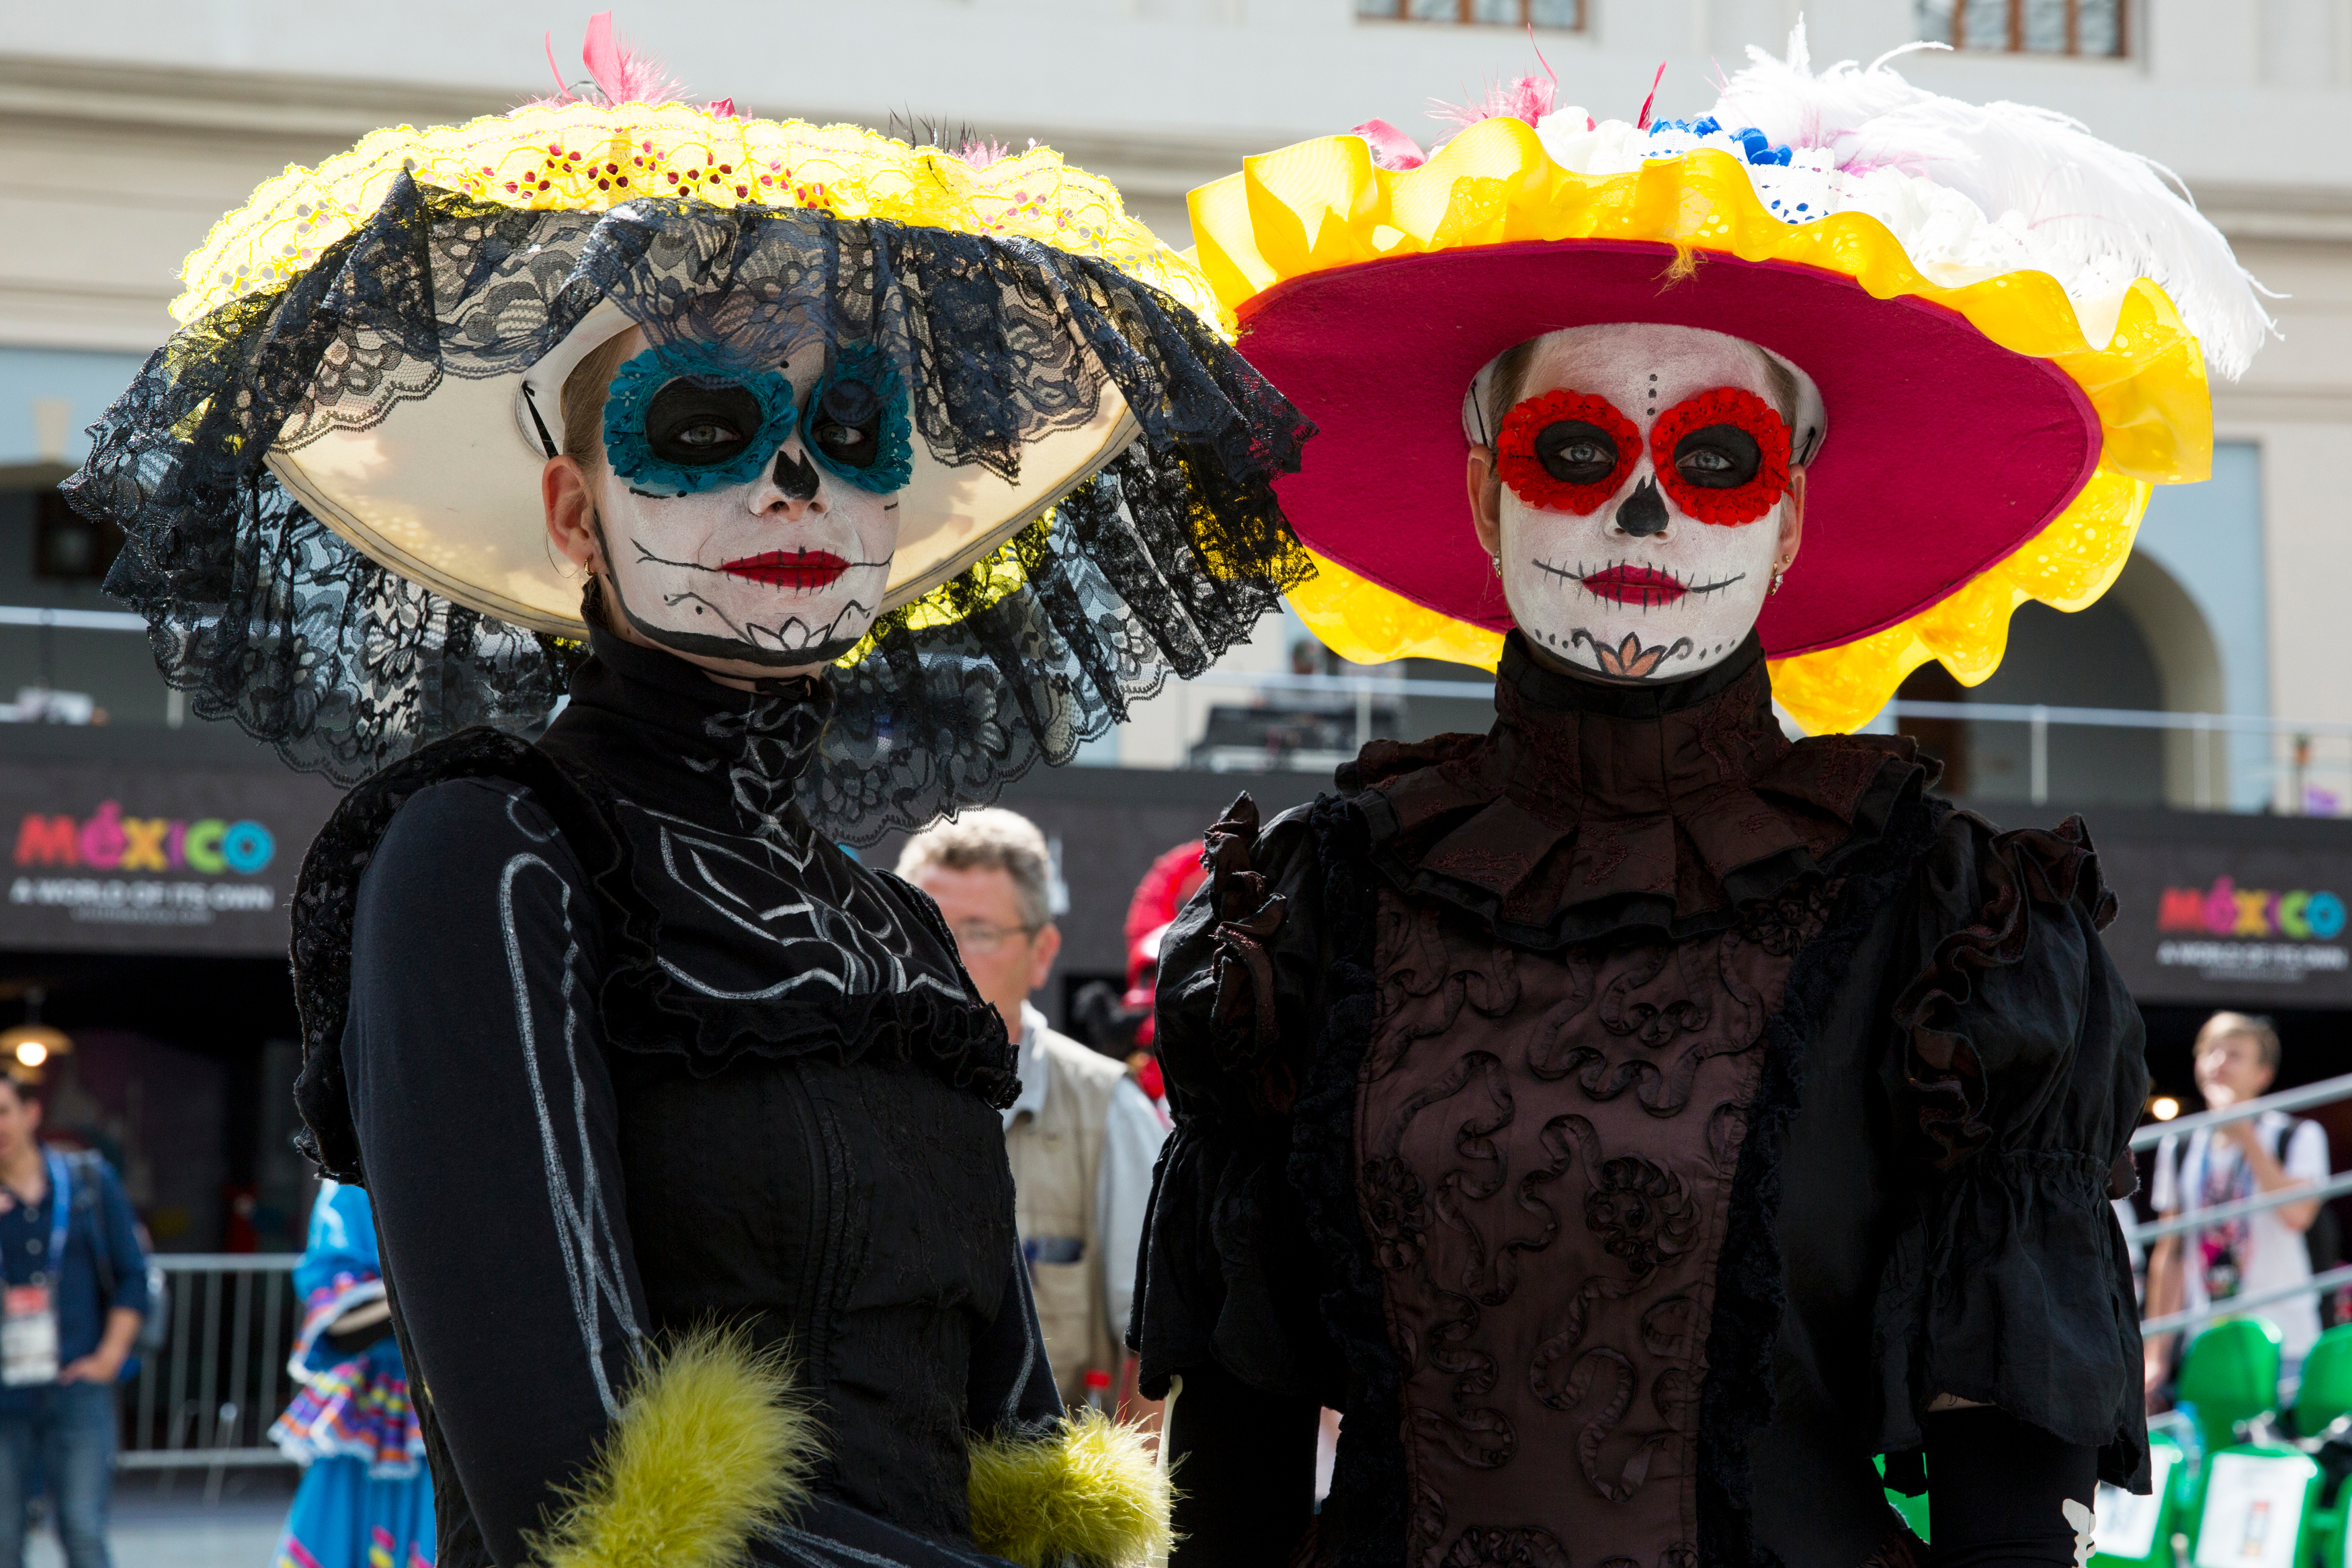 WC2018. Mexico day of the dead